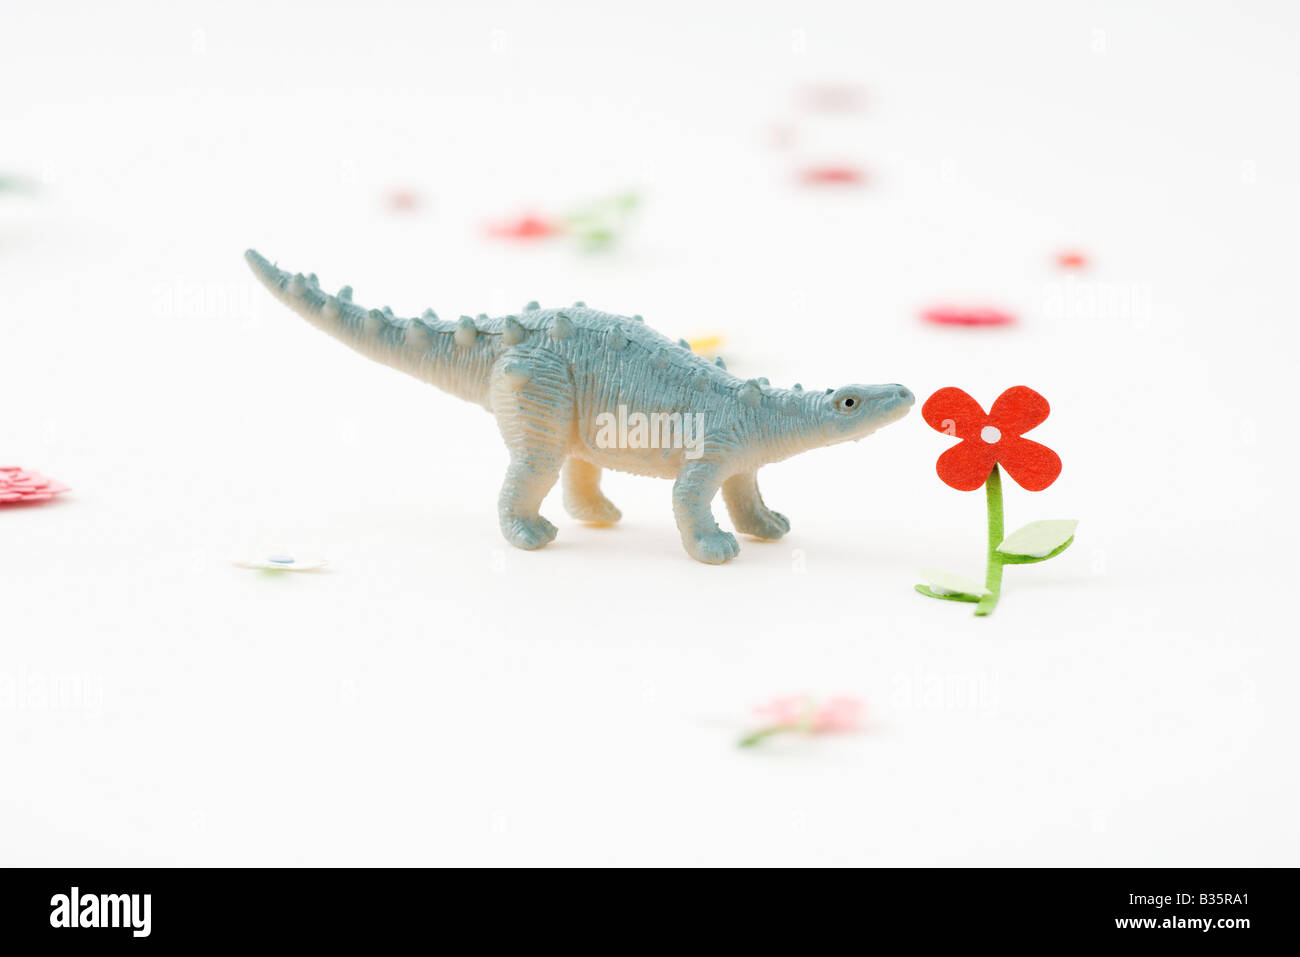 Toy dinosaur smelling artificial flower - Stock Image